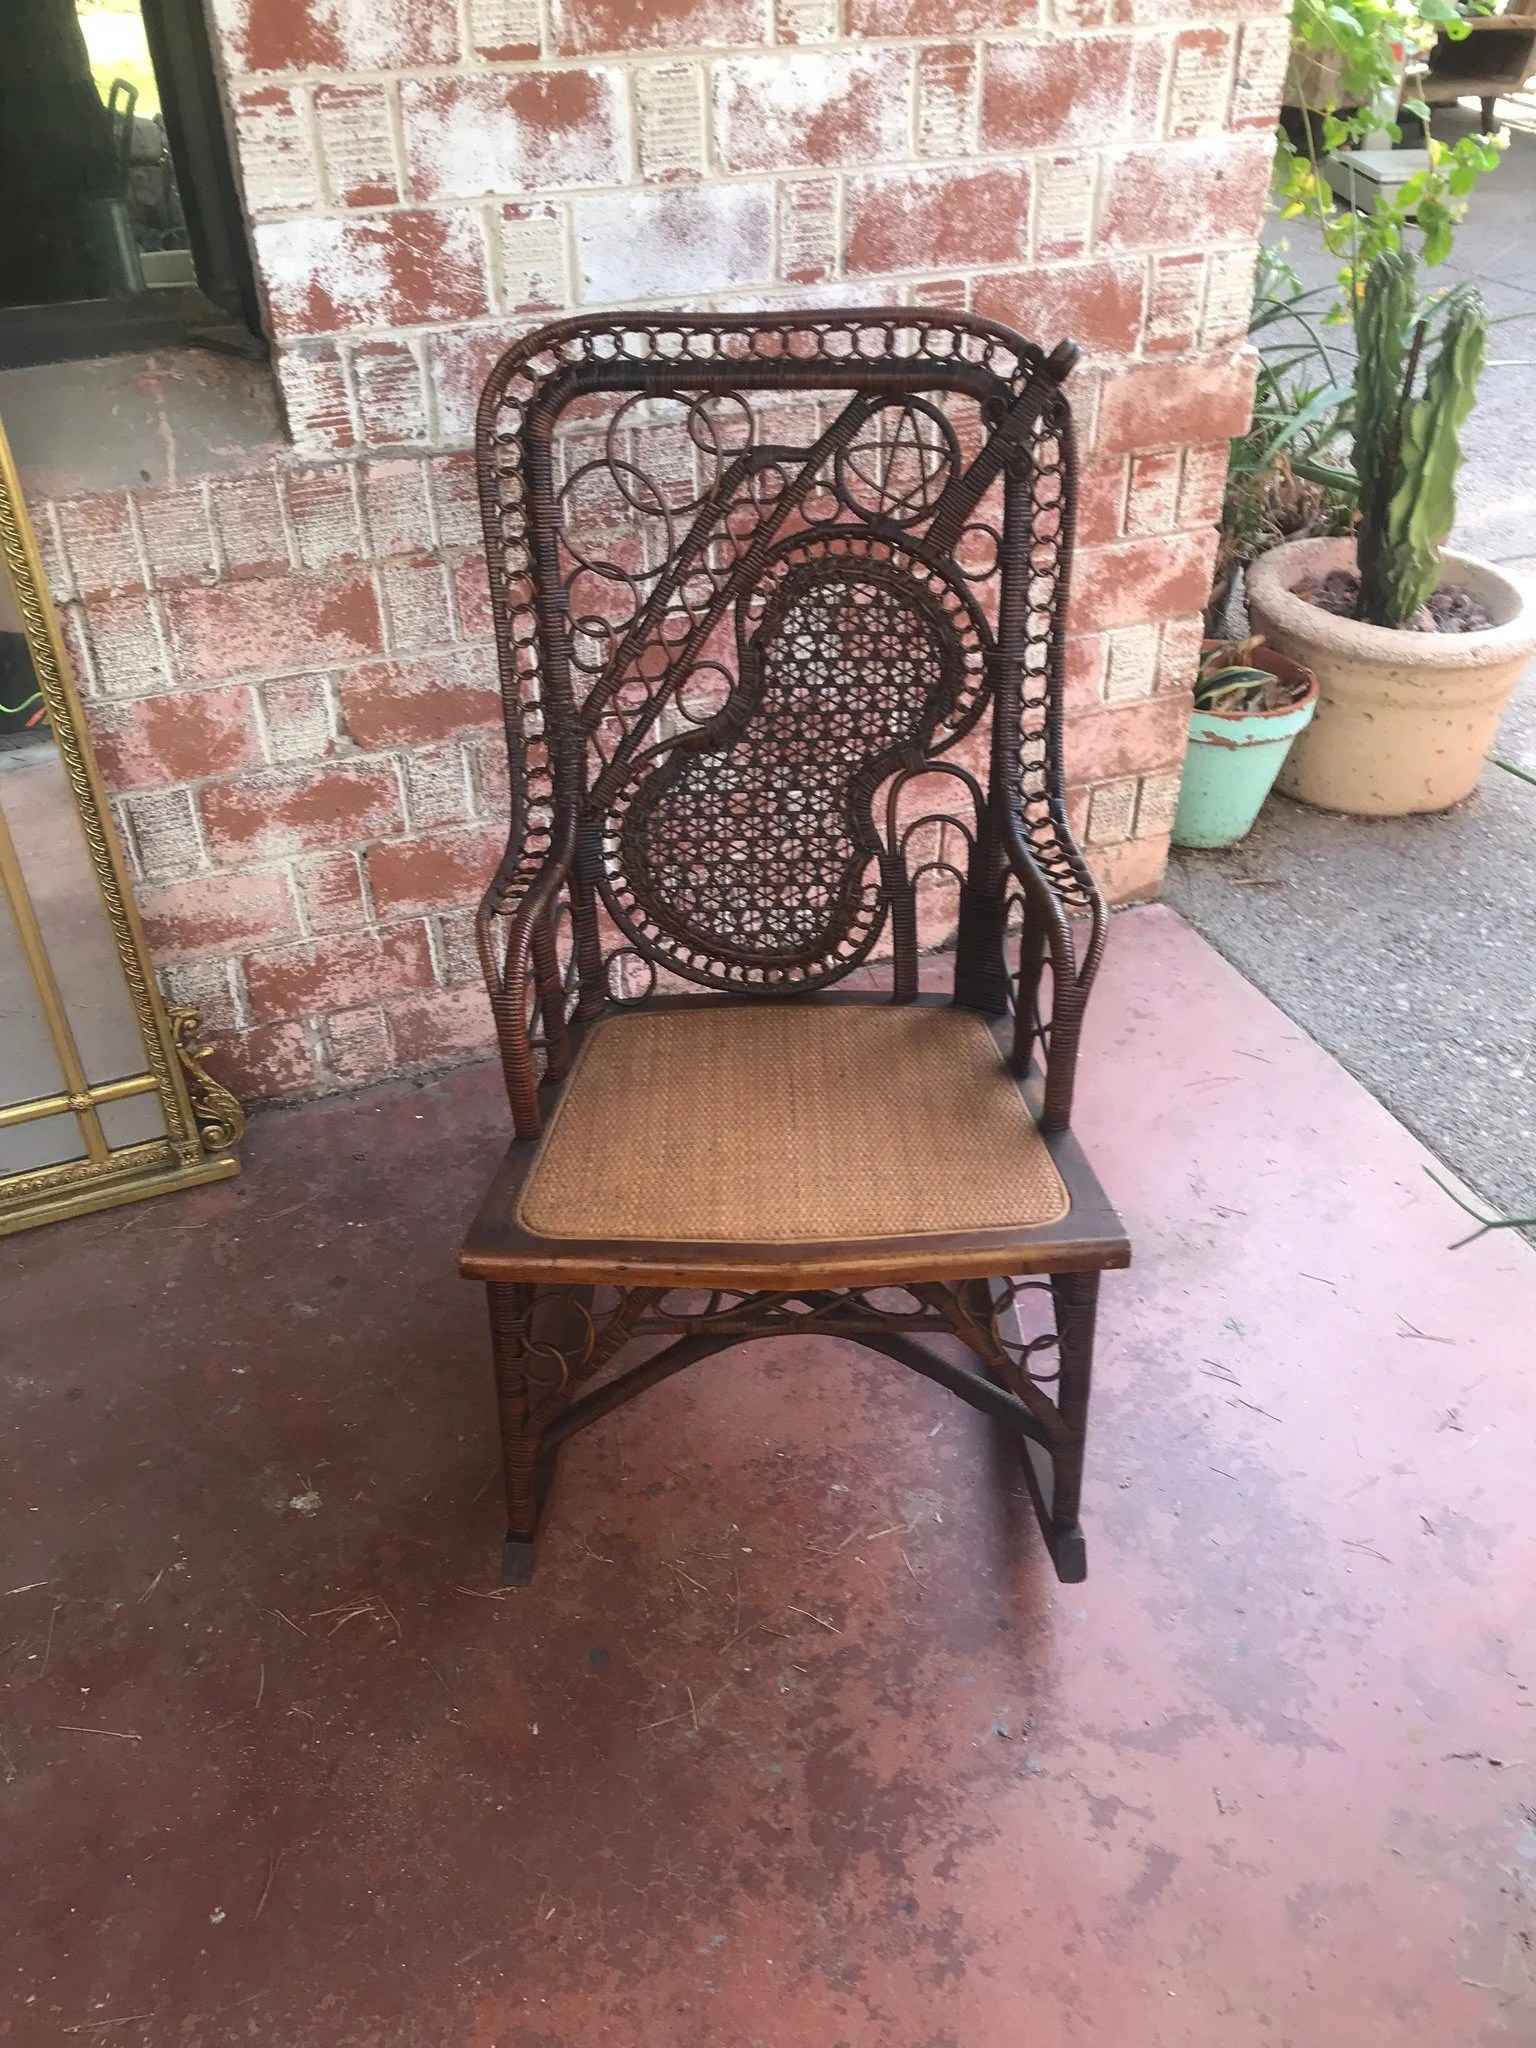 guitar shaped chair on workout very rare antique 19th century lacy wicker fiddle etsy image 0